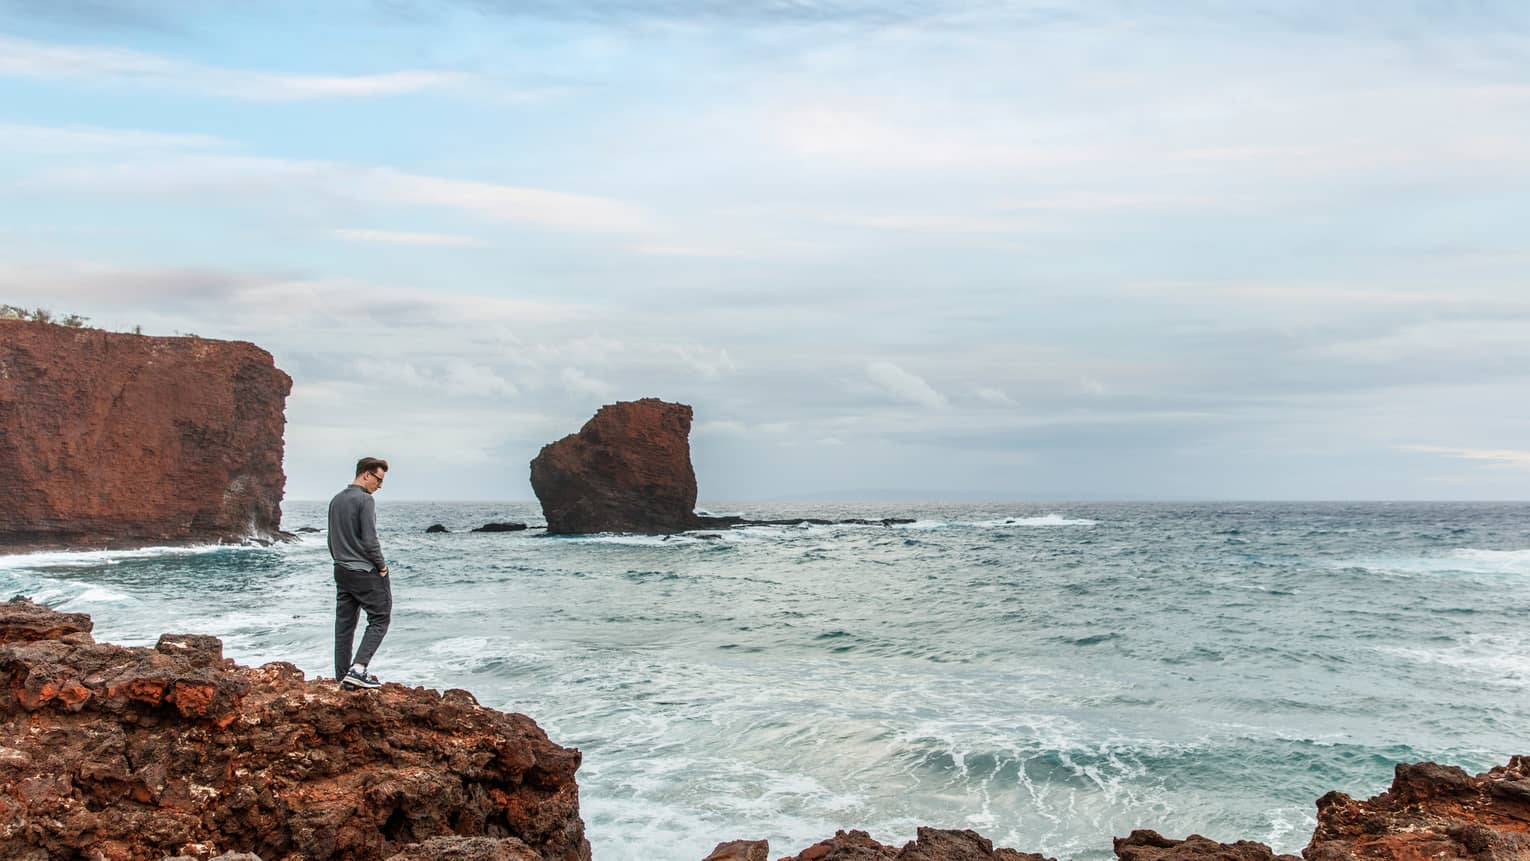 Man walks along brown rocks, looks down into ocean